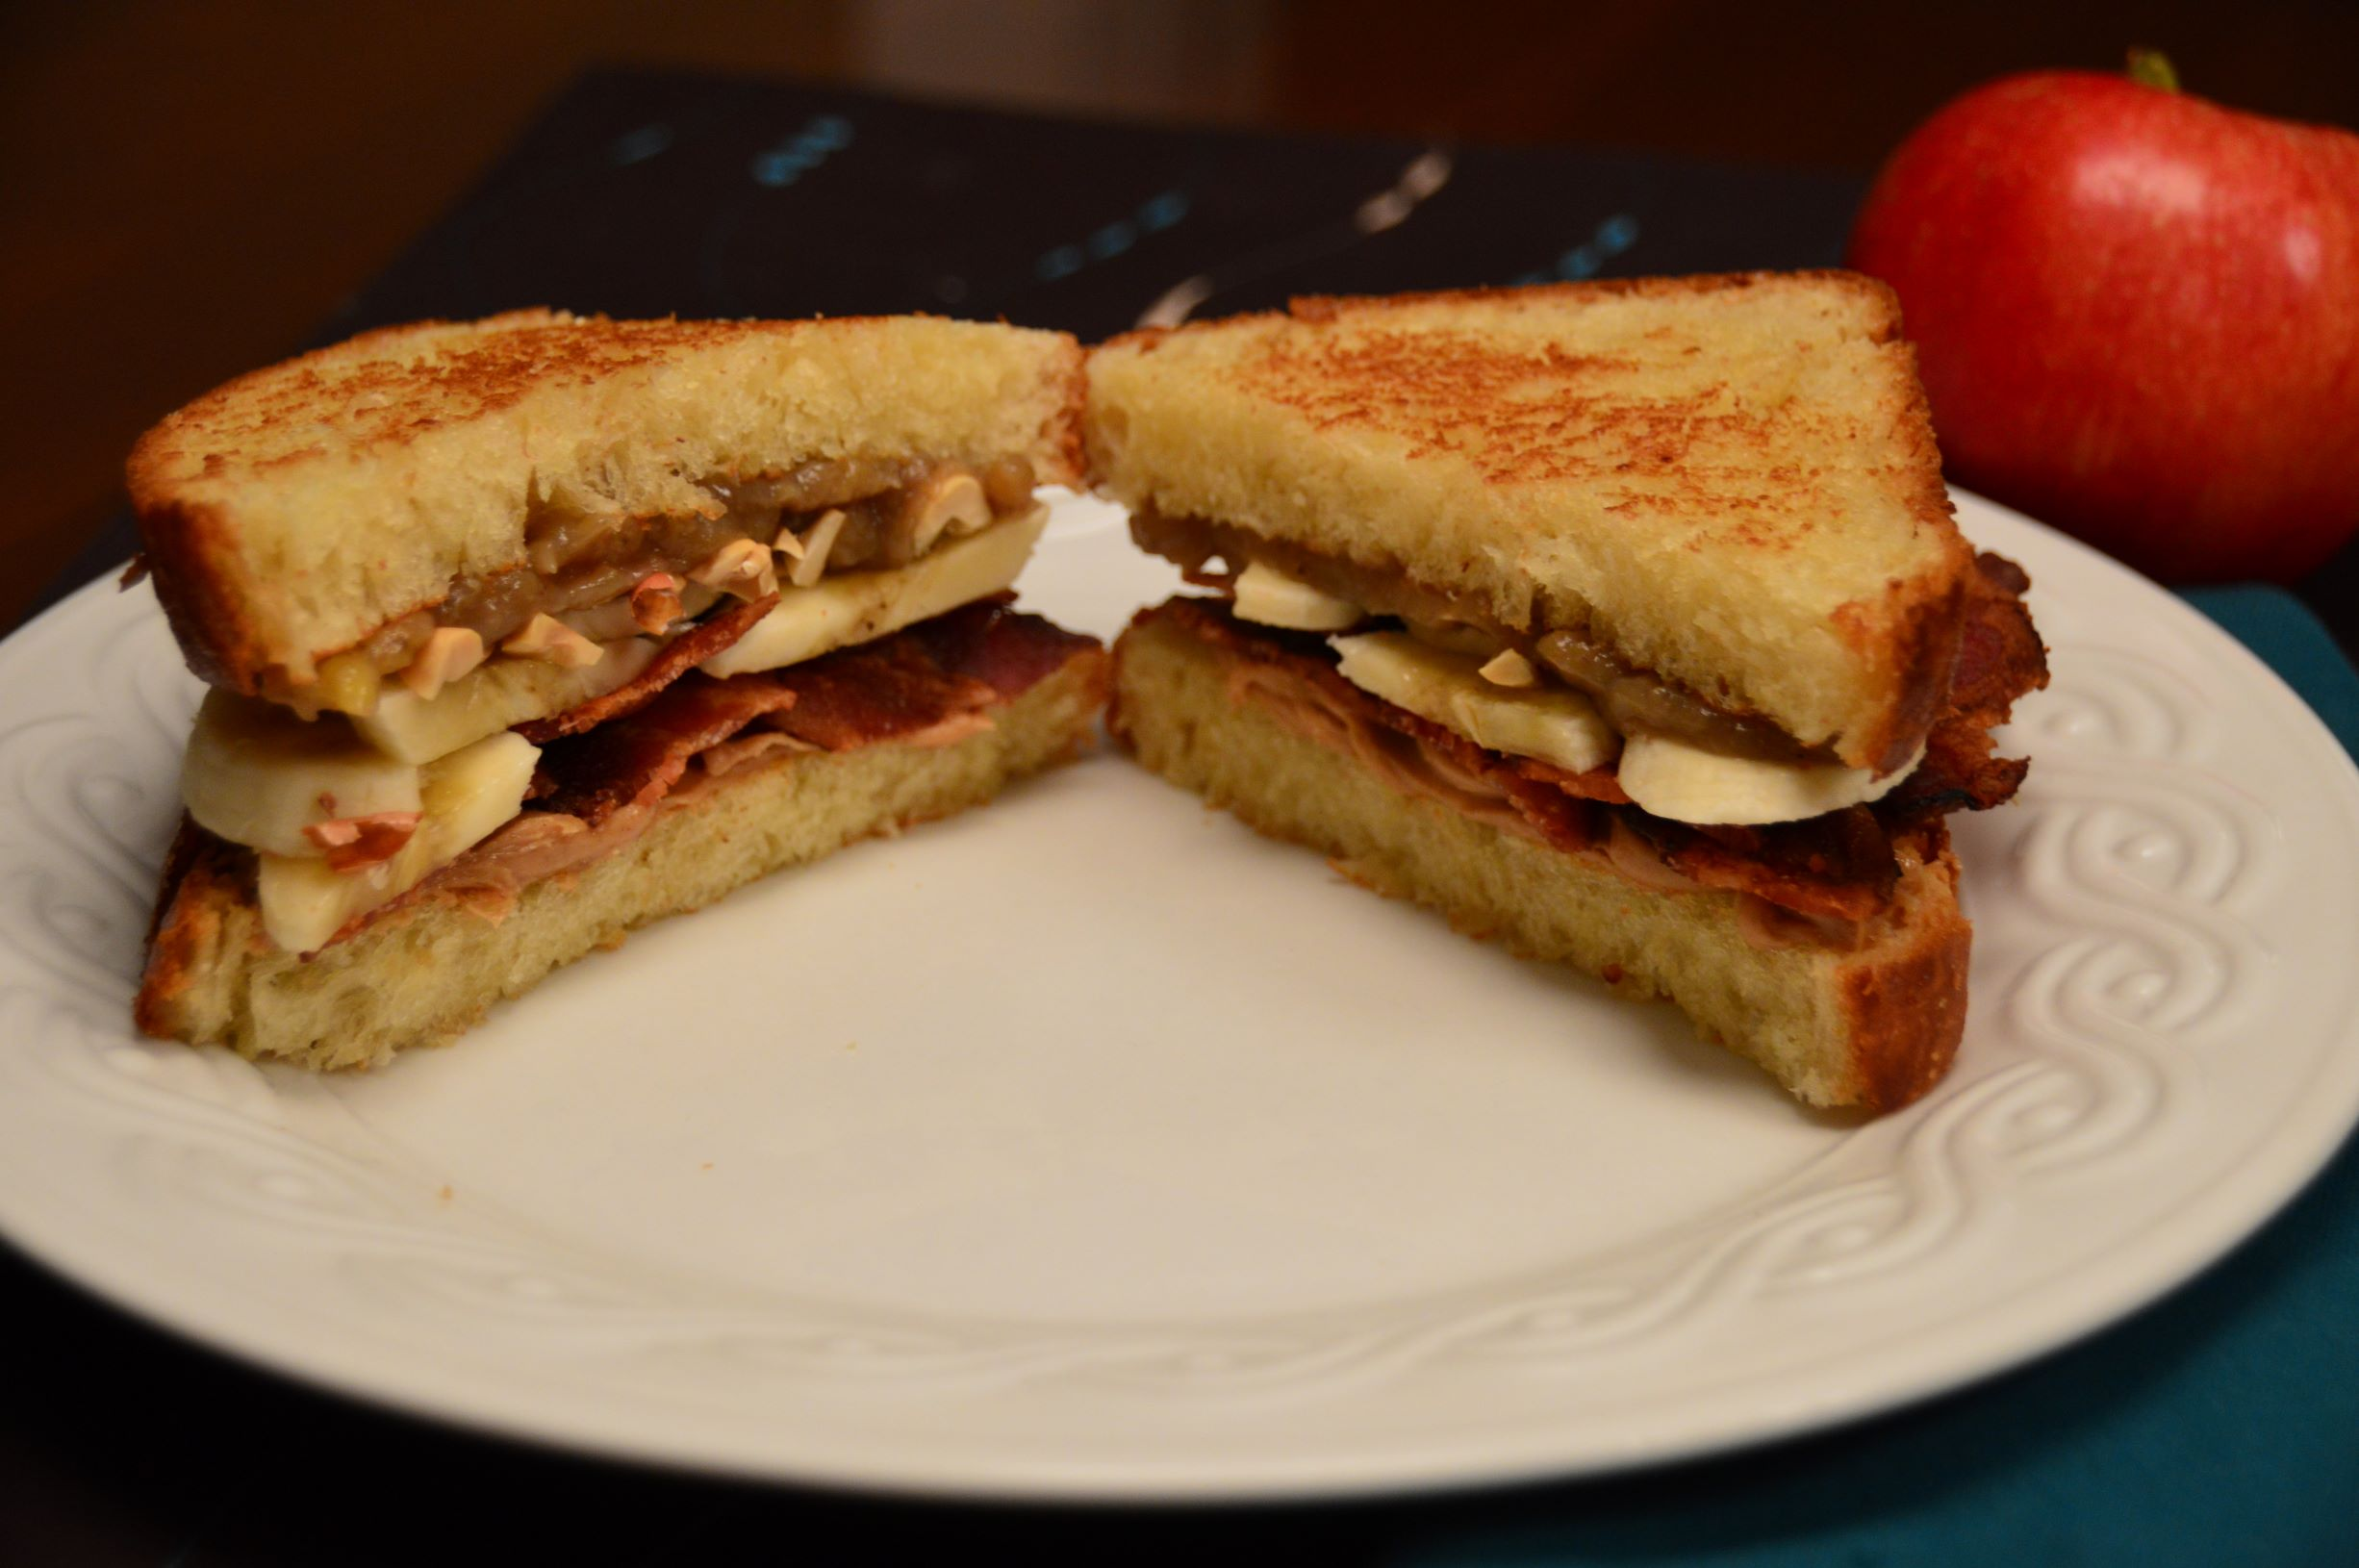 Elevated Elvis PBBB (Peanut Butter, Bacon, Banana) Brioche Sandwich